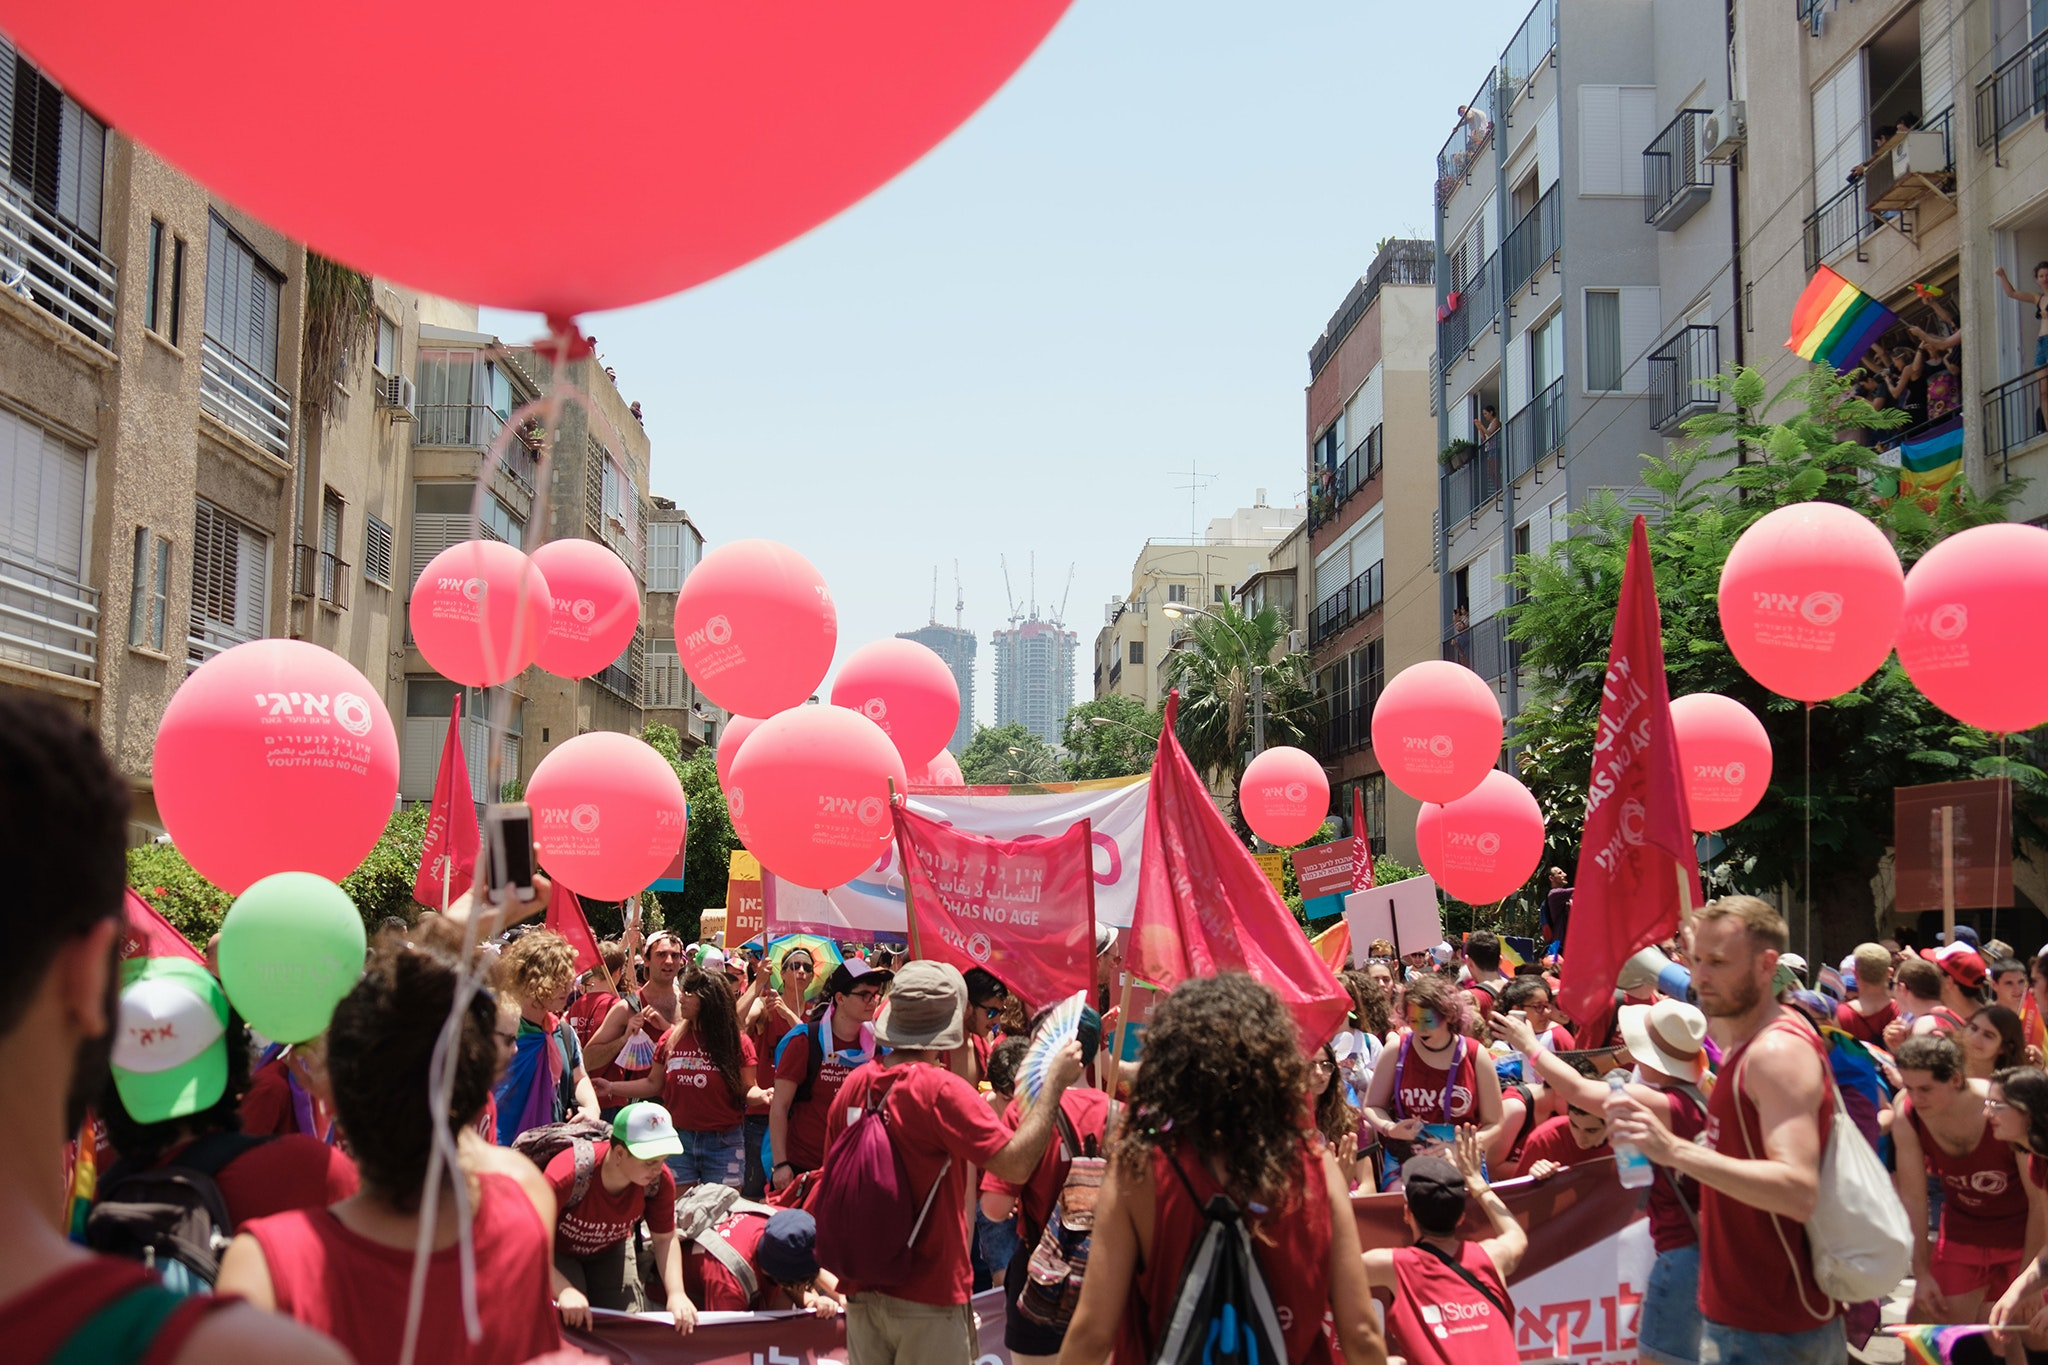 Tel Aviv's Pride events reach their peak with a parade that ends in an open-air party by the beach.